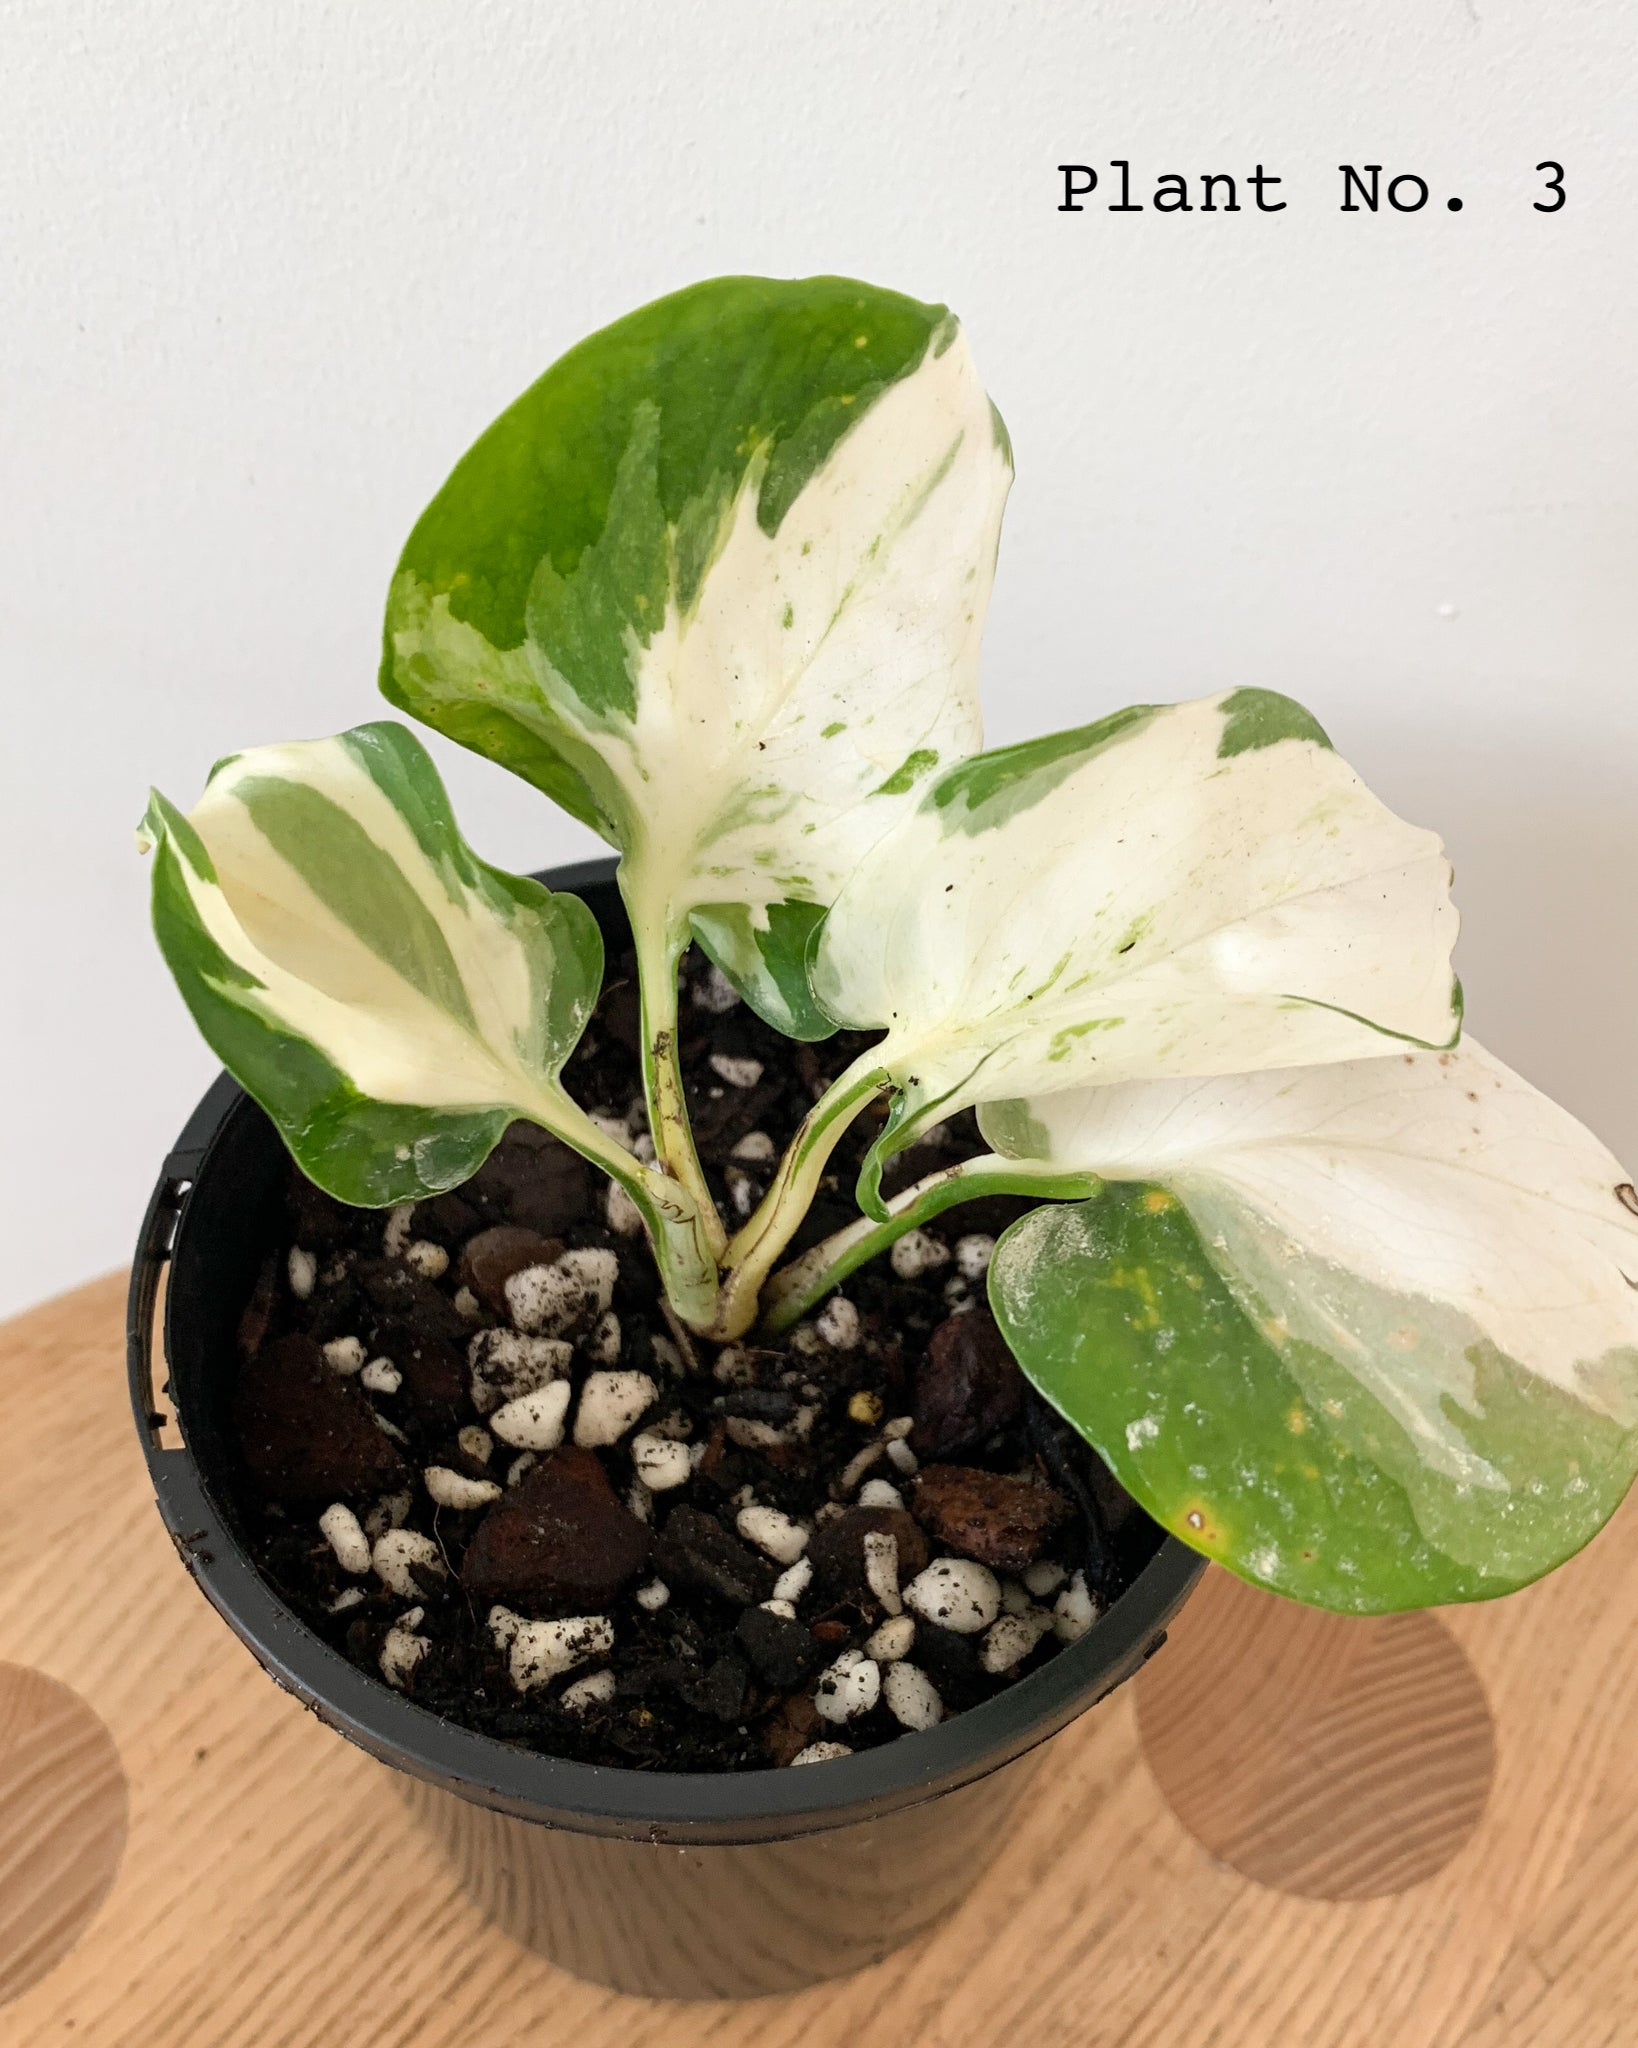 Manjula Pothos One Of A Kind Plants 10cm Pot Delivery At Your Ri The Plant Room Tasmania